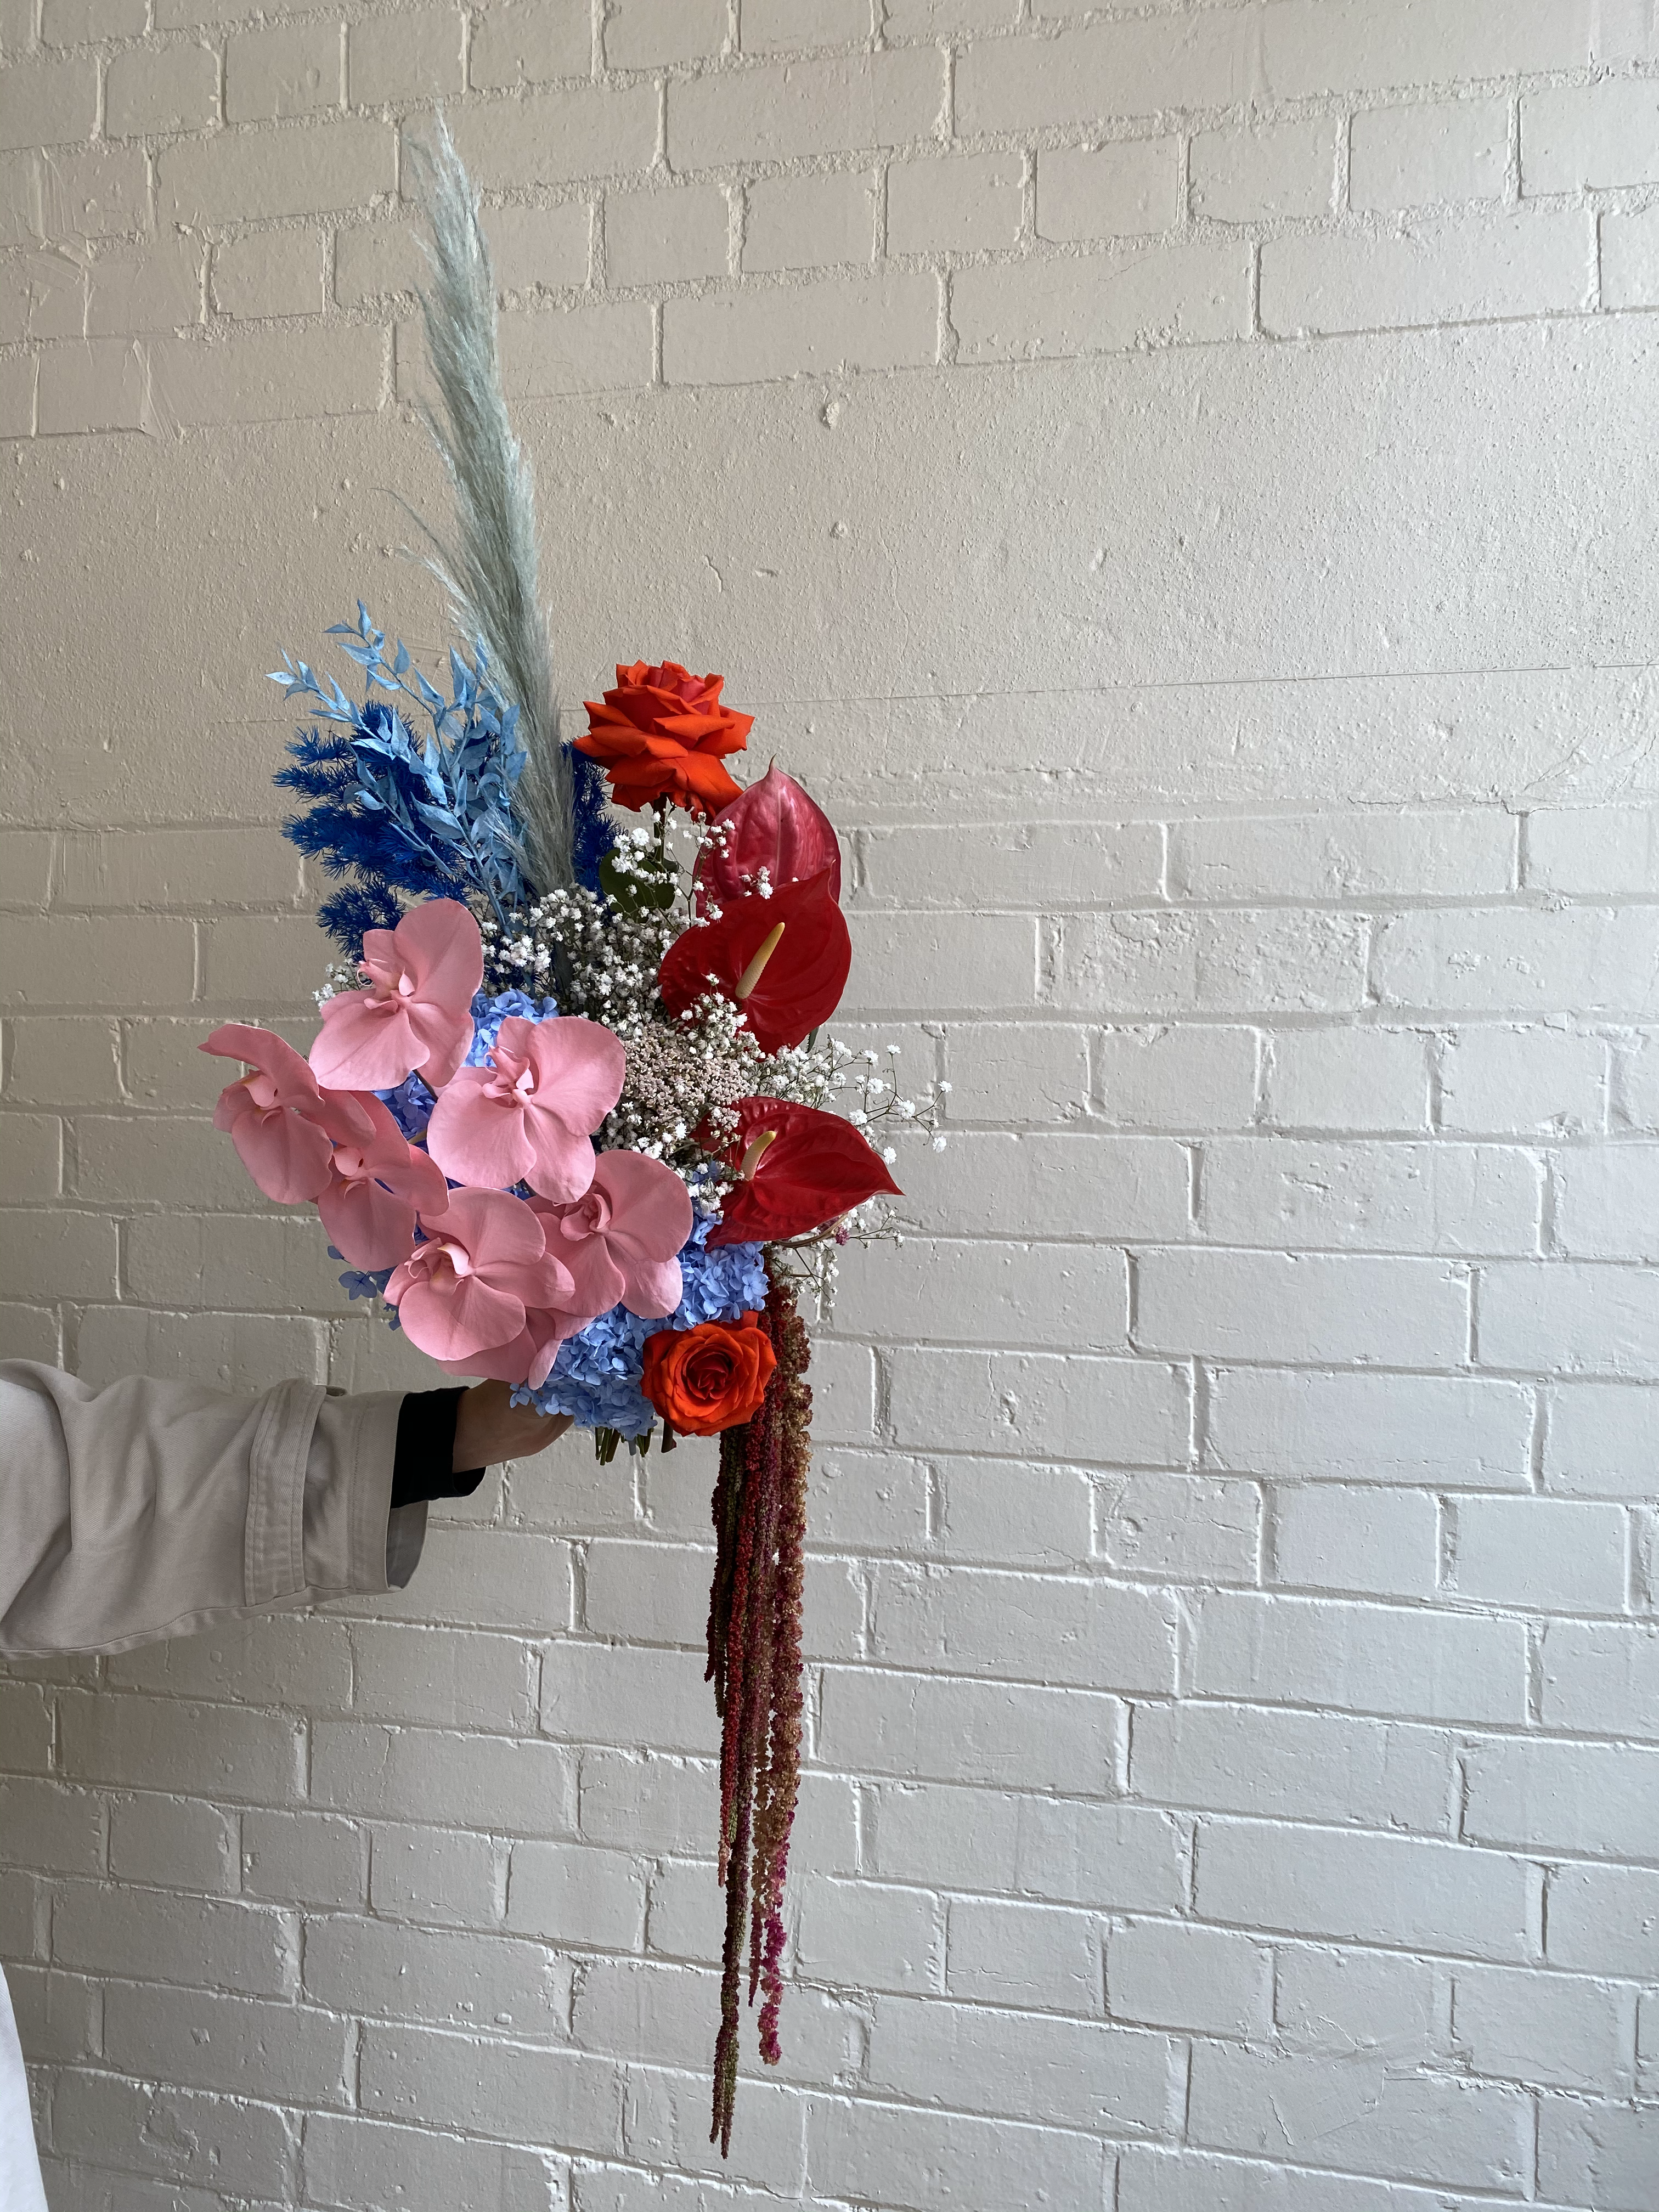 Fresh and everlasting flowers by Melbourne Floral Artist xxflos based in Collingwood